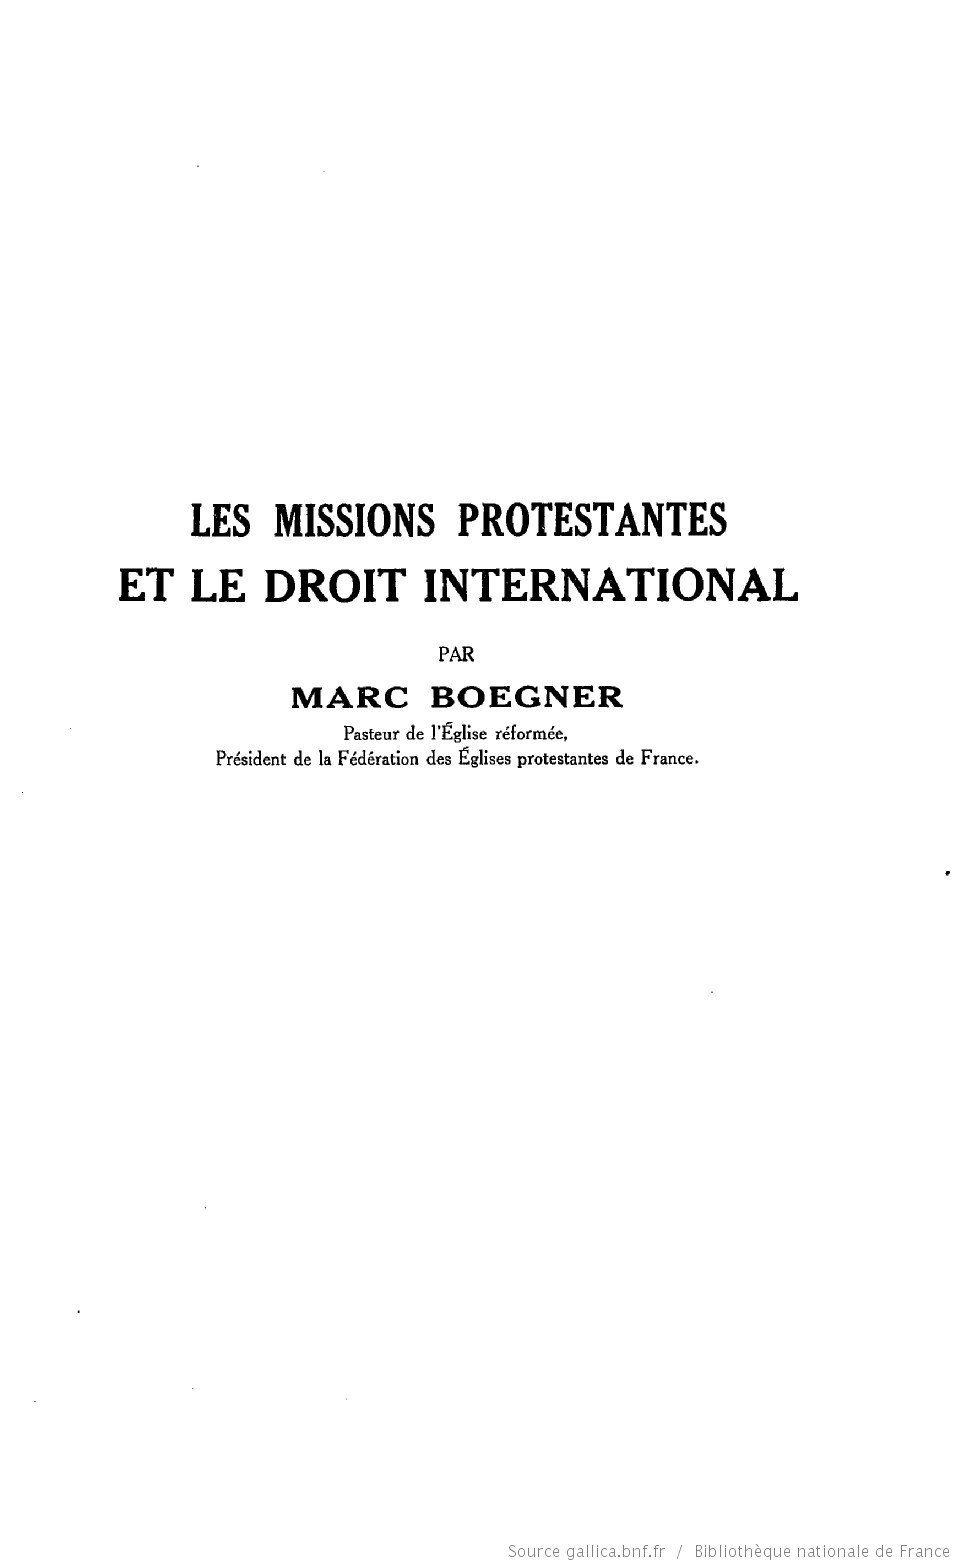 Les missions protestantes et le droit international (1930)